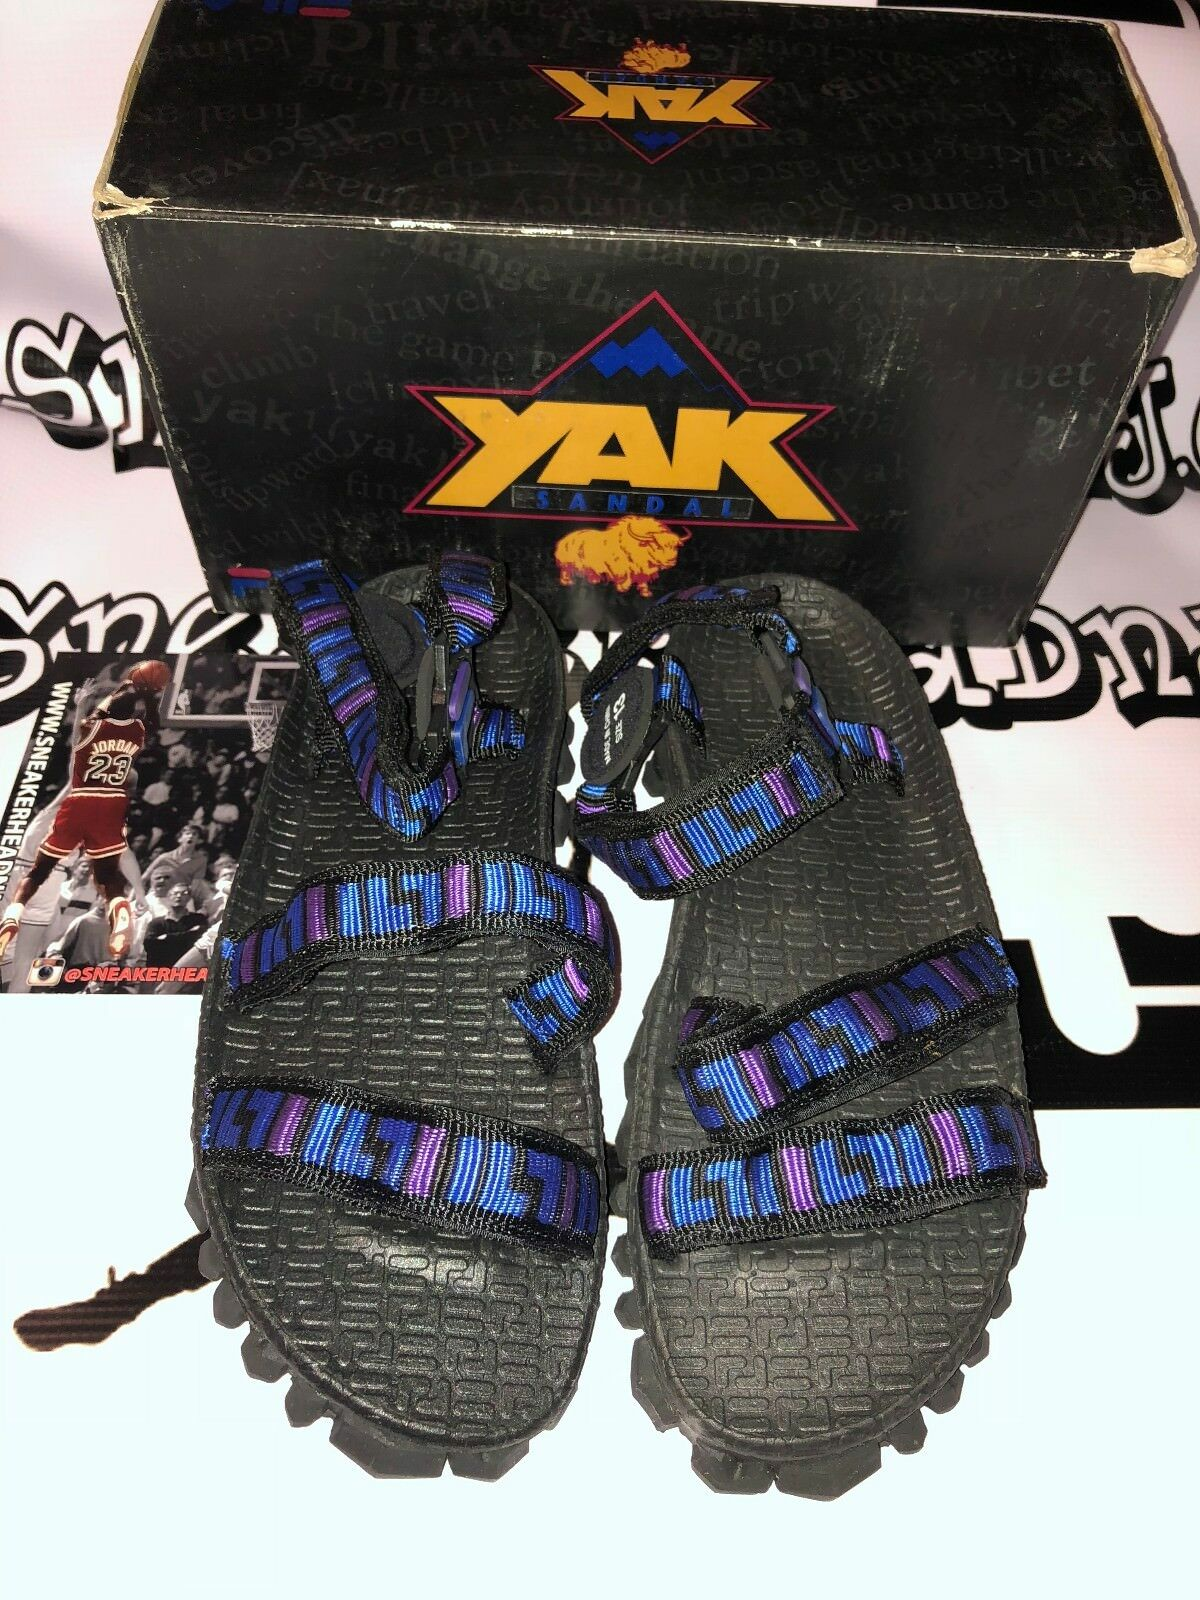 Vintage Blue Fila Men's Yak Sandal Black Blue Vintage Purple 101593-K Sizes 9-13 76c560